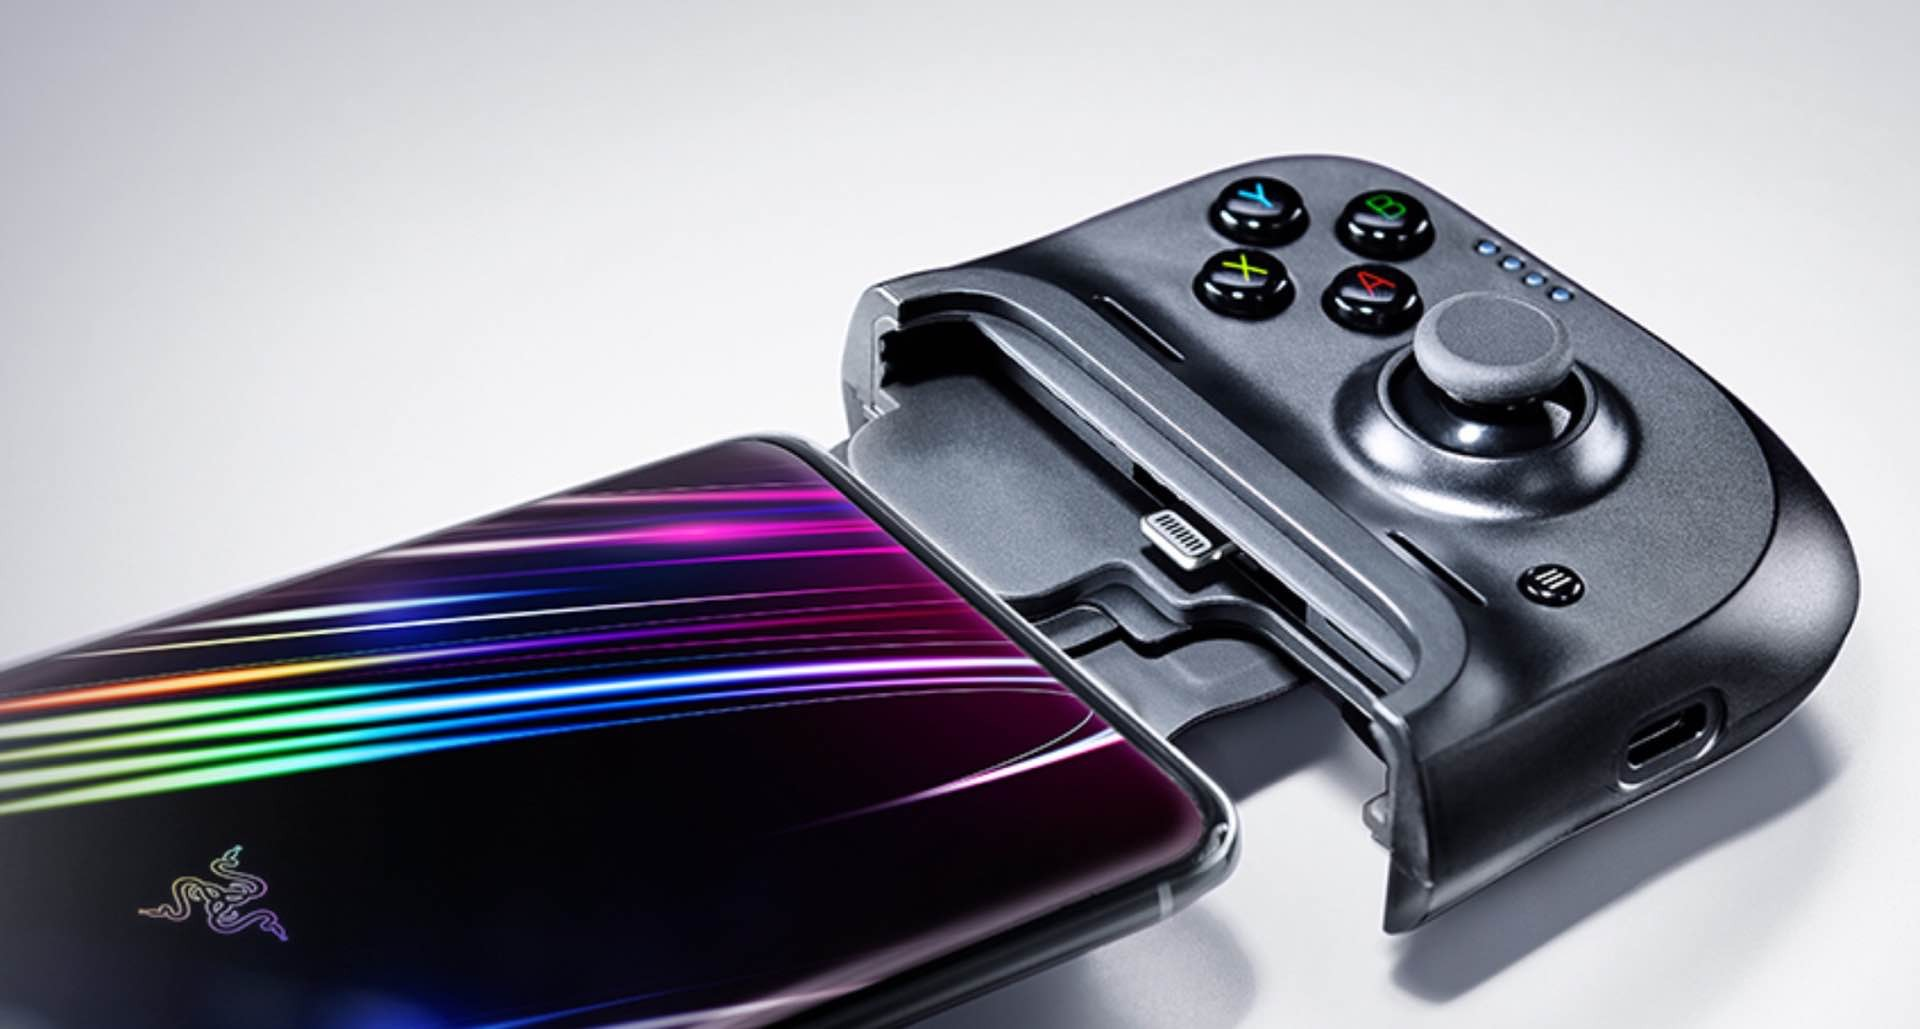 razer-kishi-universal-gaming-controller-for-iphone-android-connector